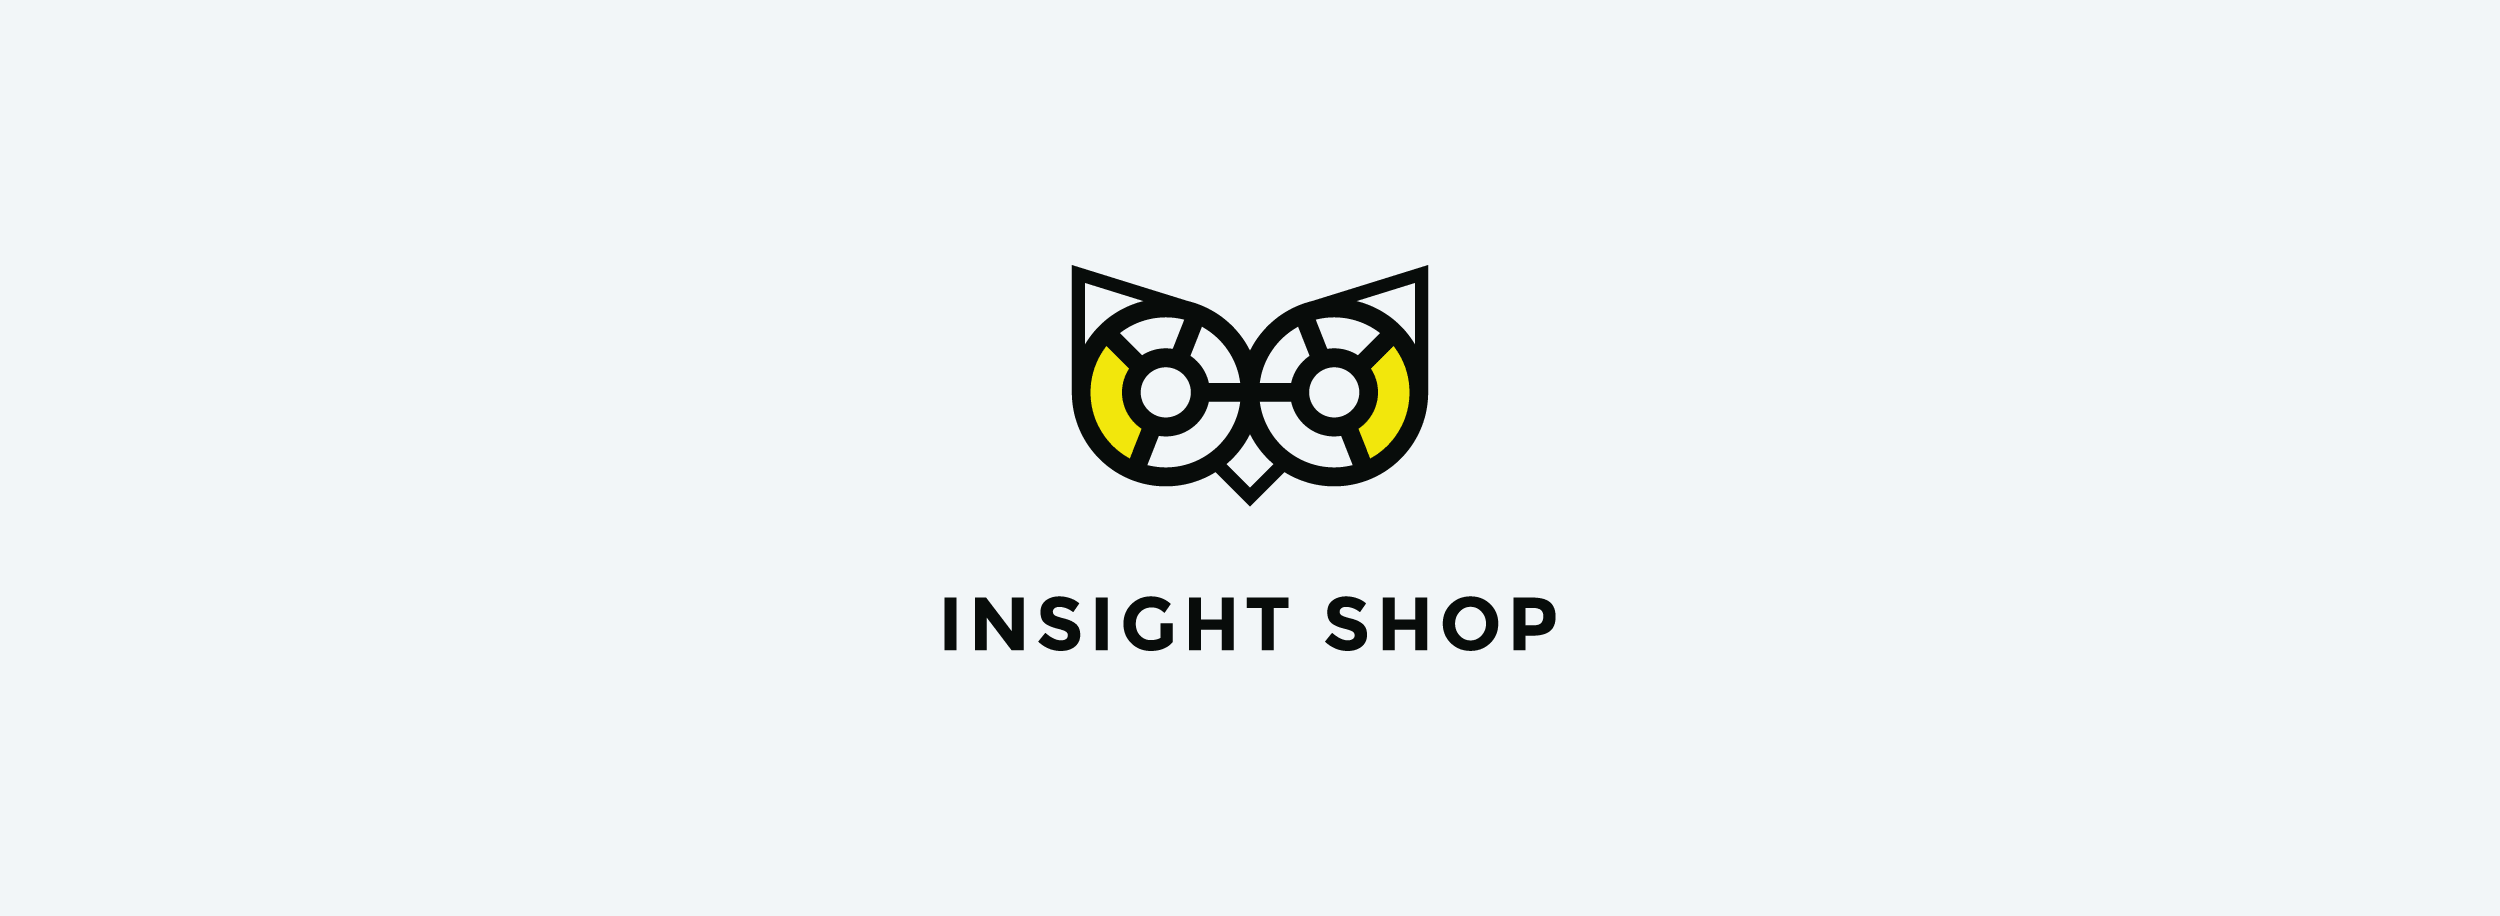 Insight Shop logo with an instantly recognizable owl symbol. © LET'S PANDA